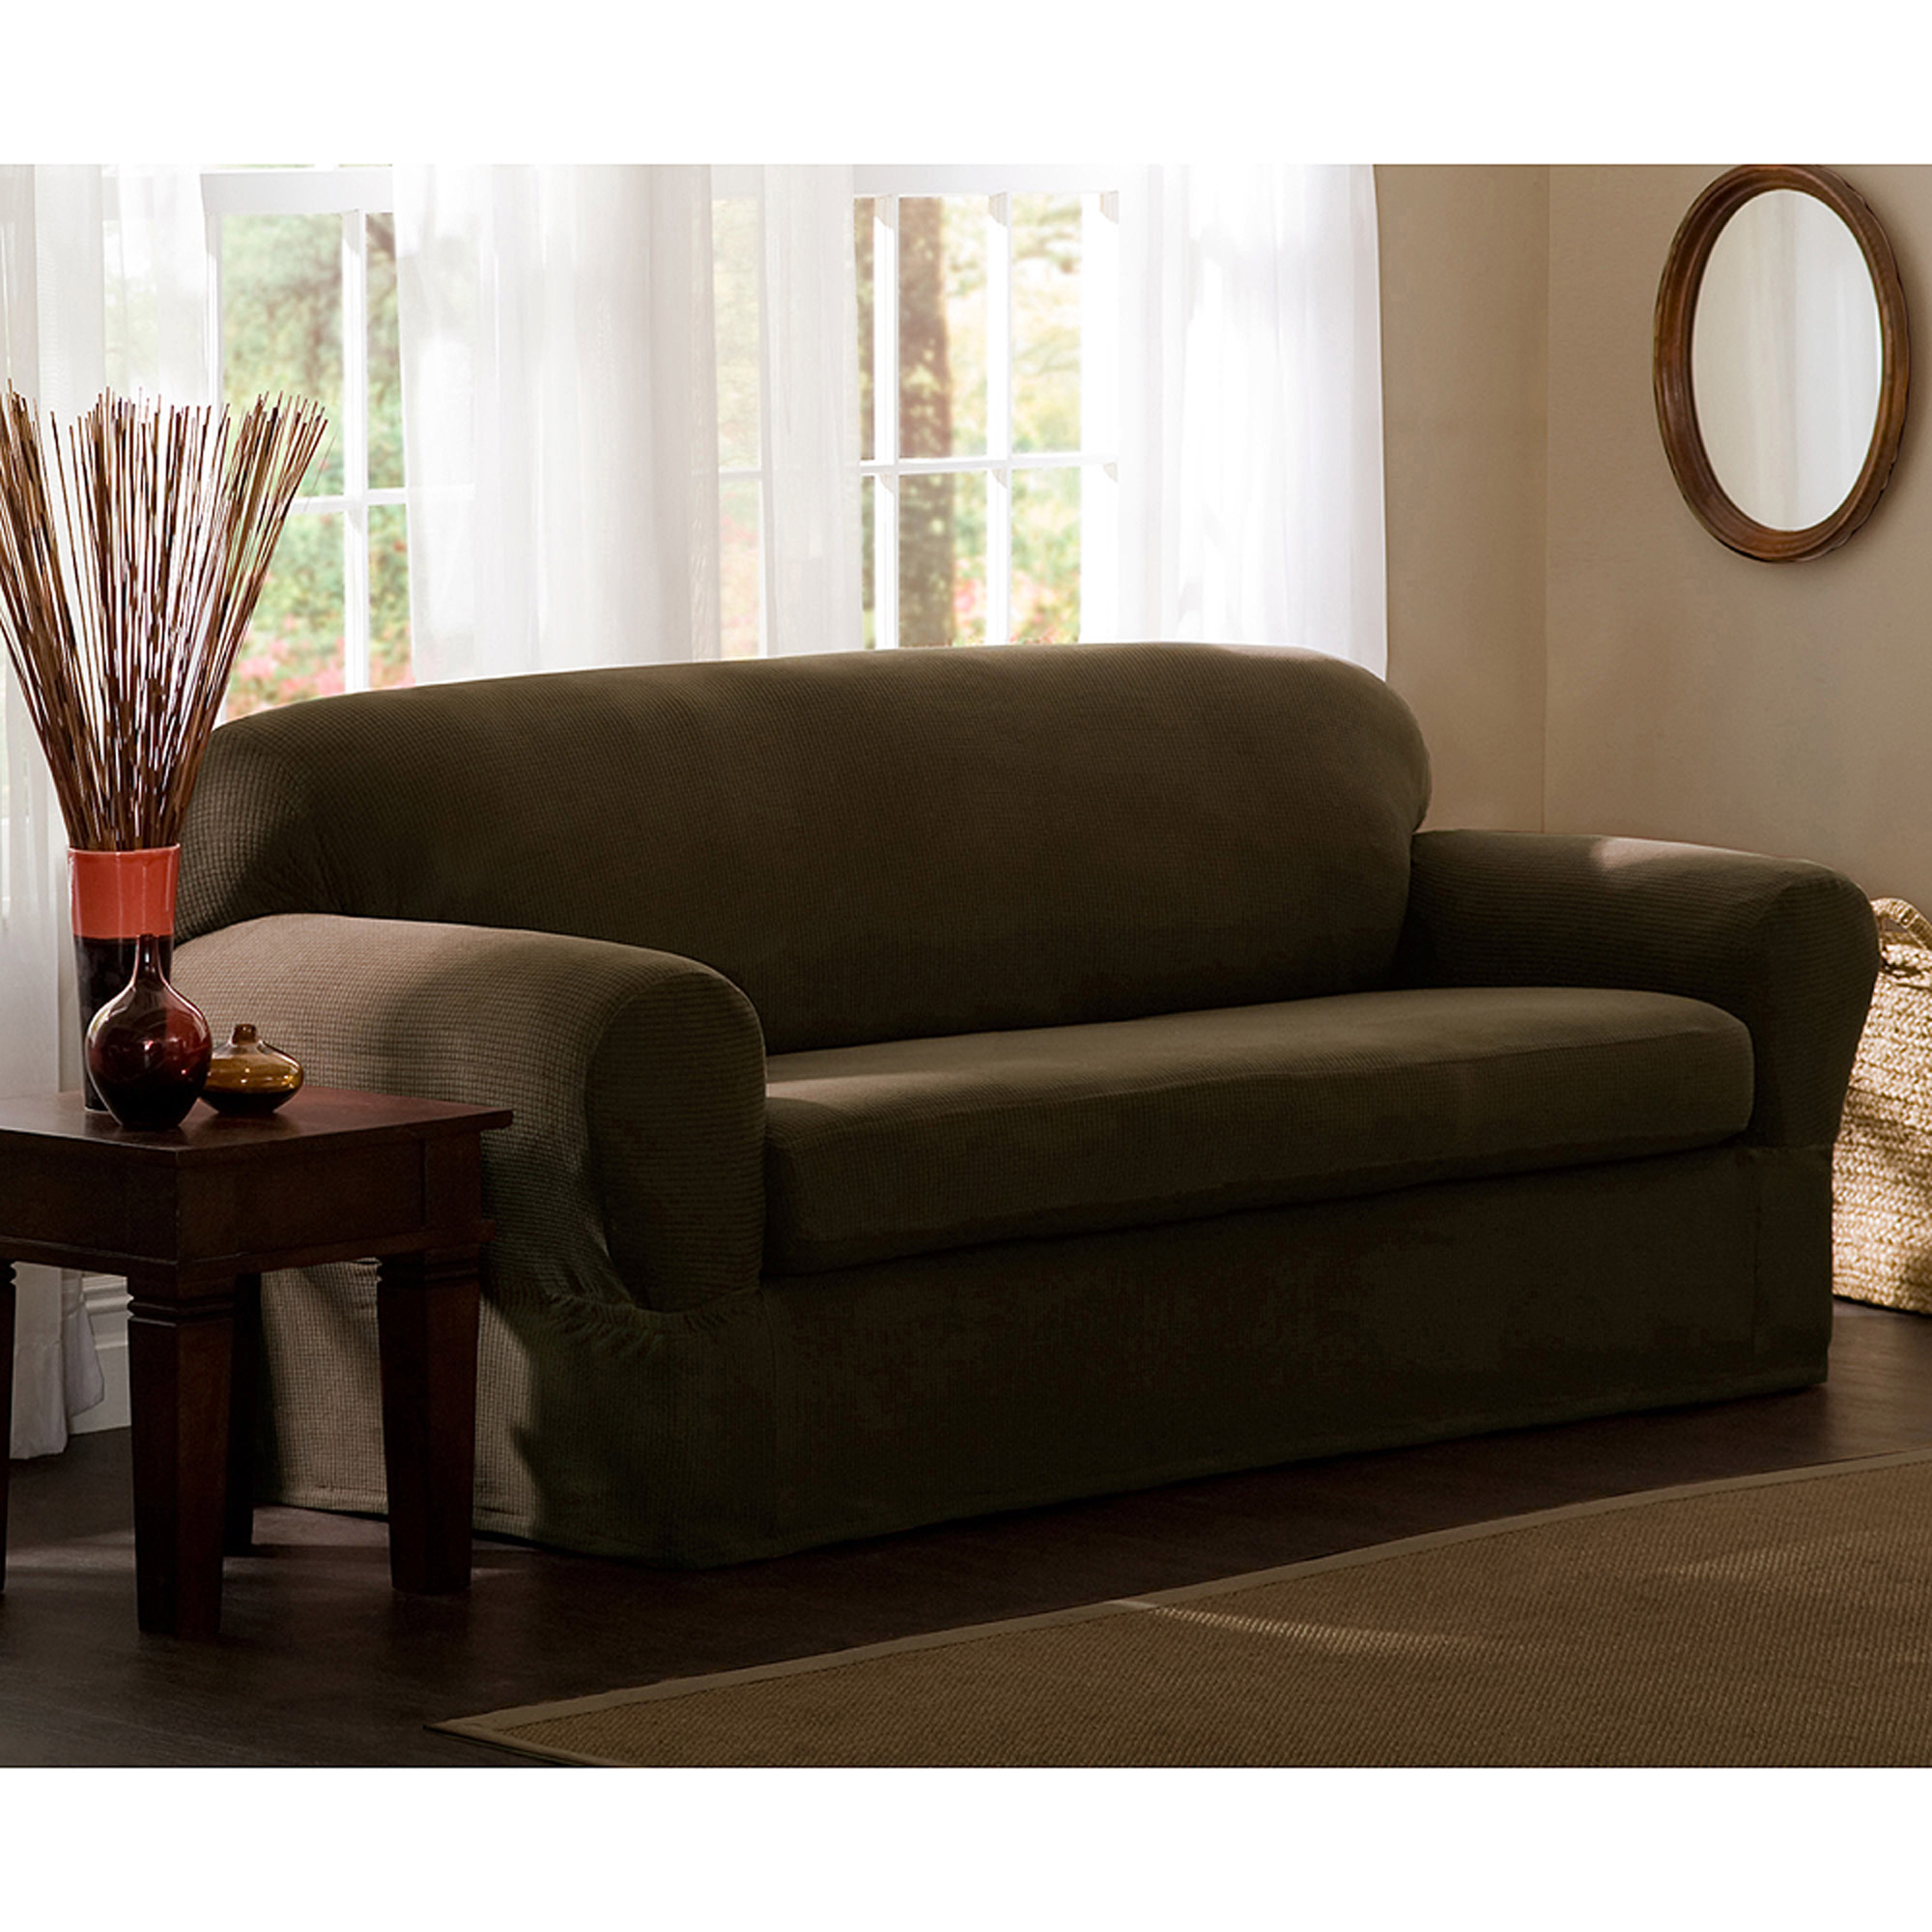 Excellent couch and loveseat covers mainstays faux suede loveseat slipcover - walmart.com brevsbe